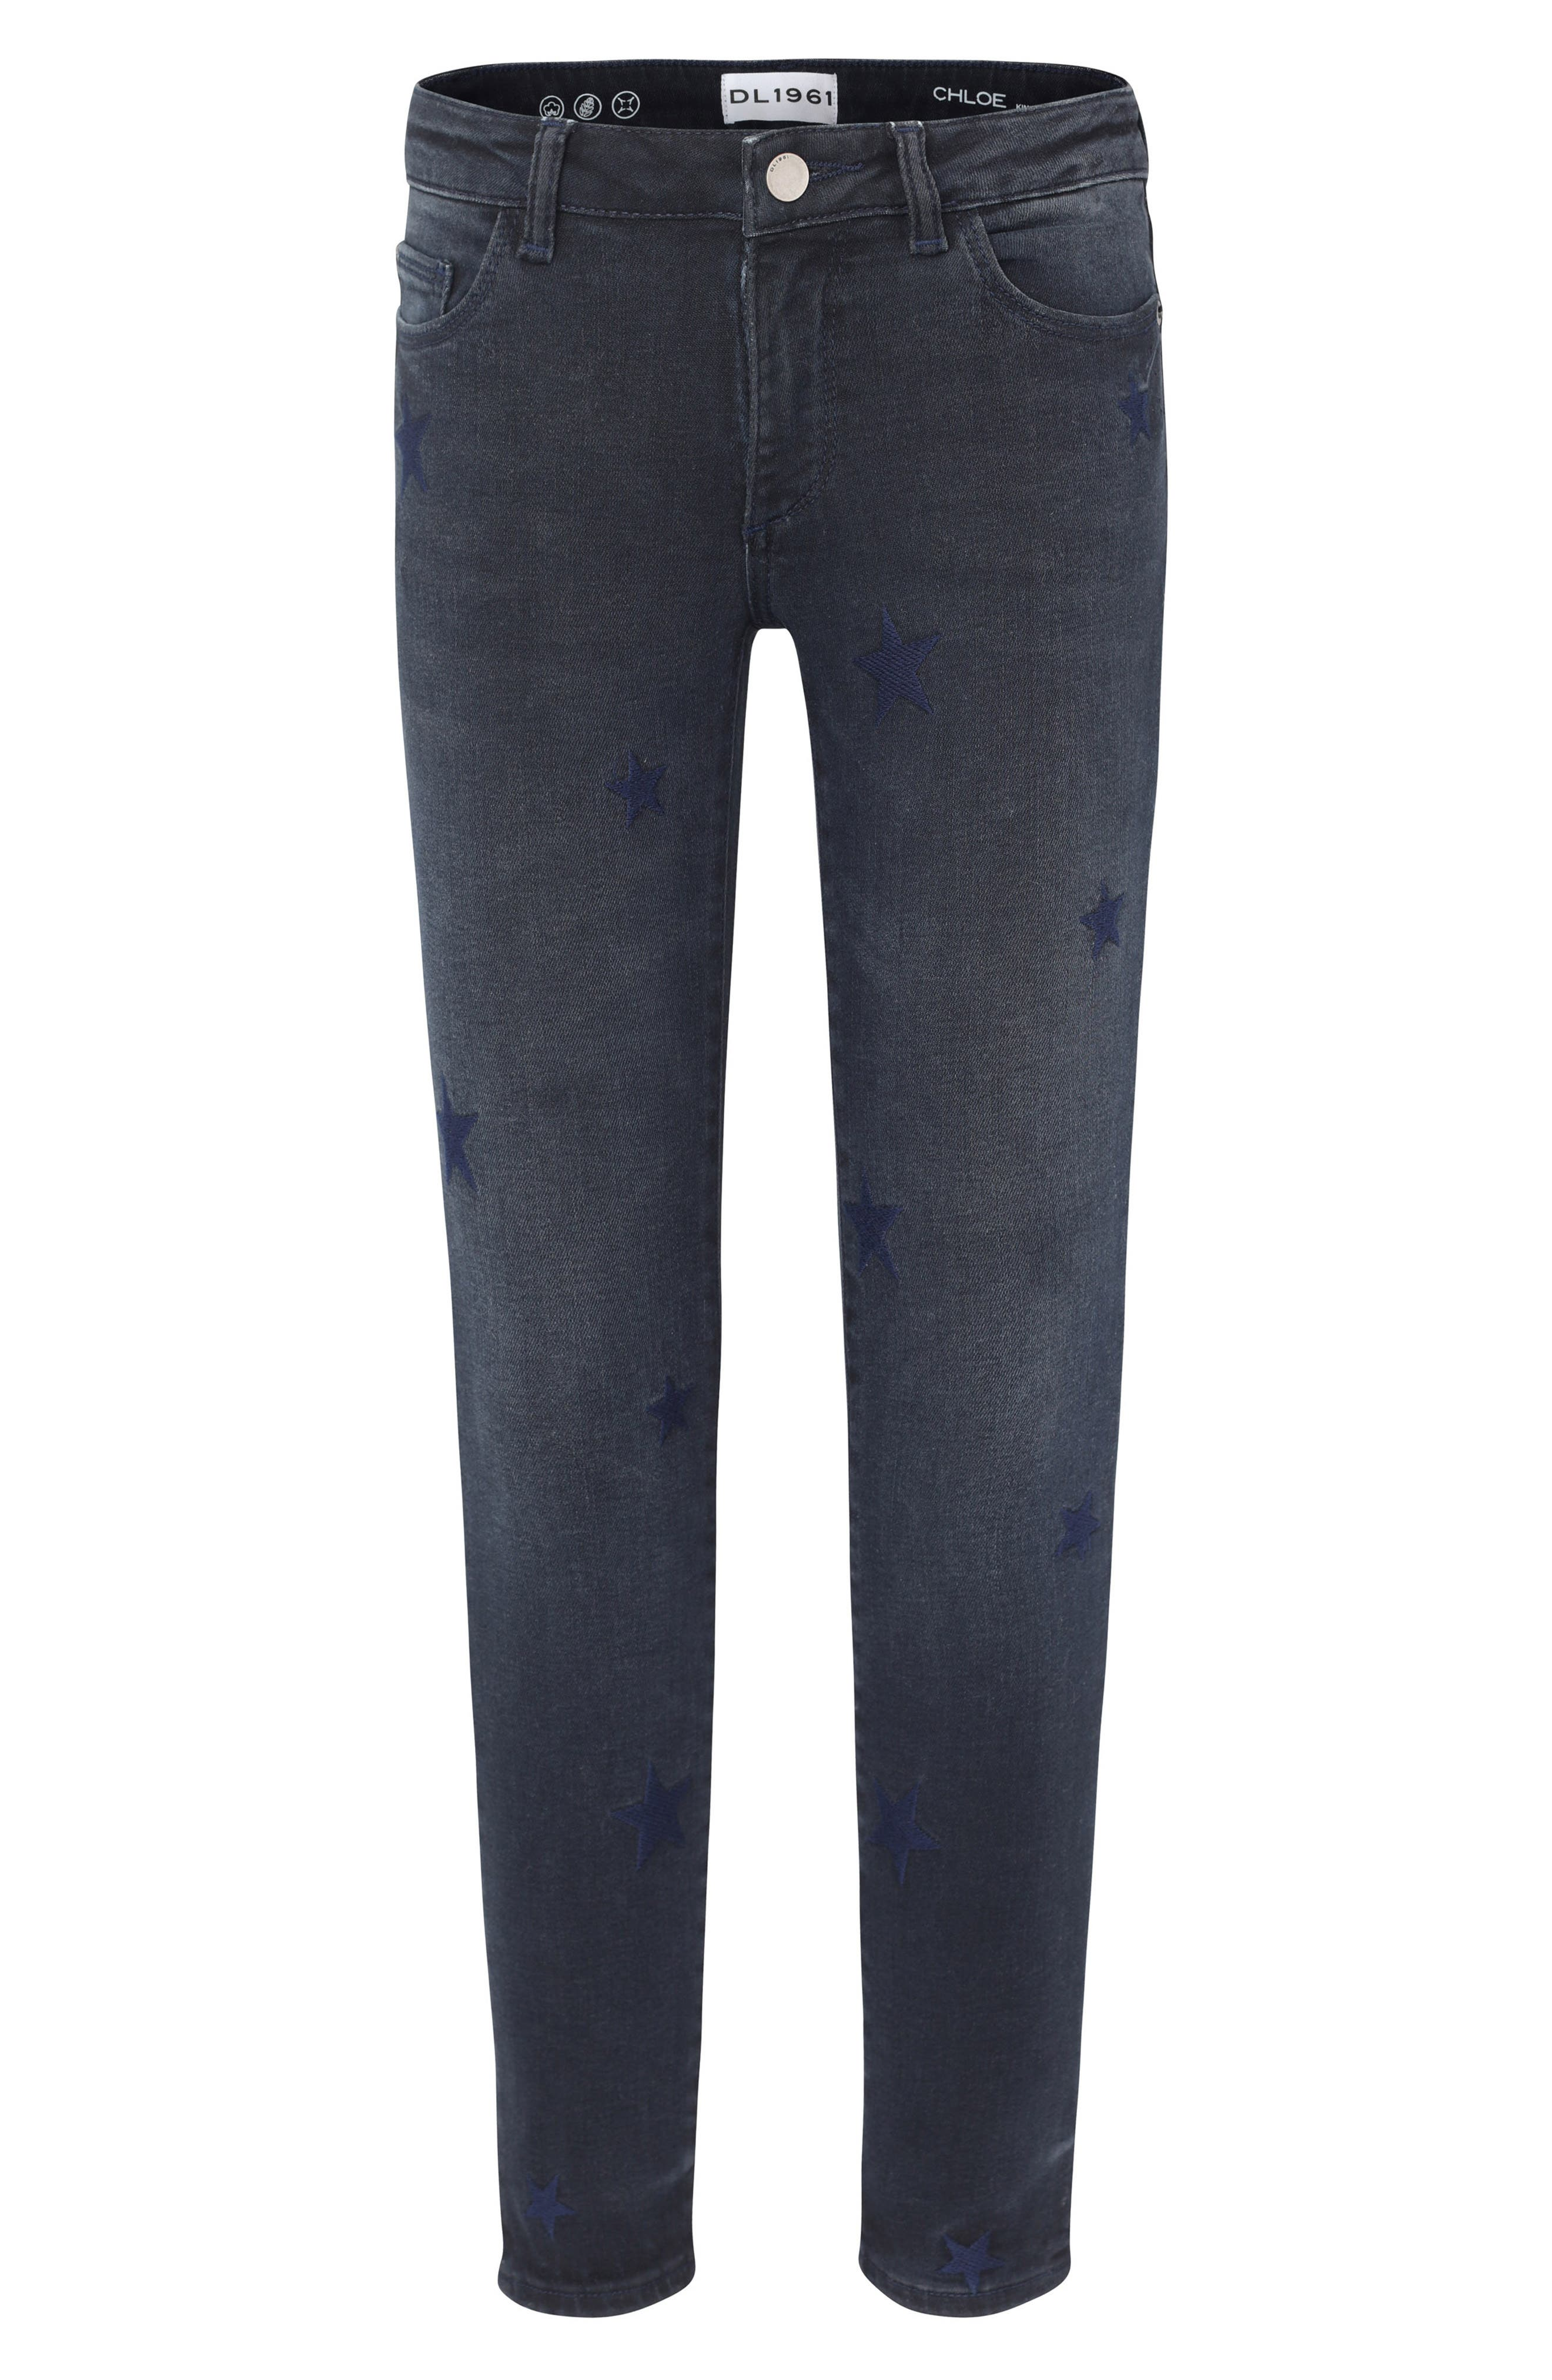 Star Embroidered Skinny Jeans,                             Main thumbnail 1, color,                             STARSTRUCK